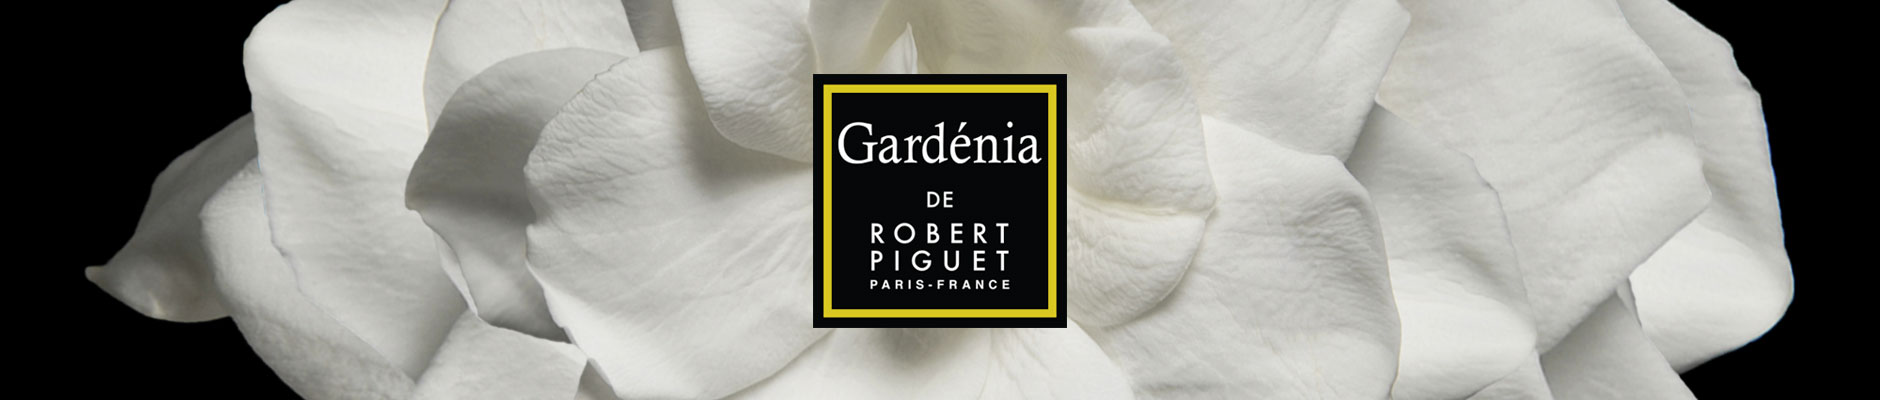 Gardenia: De Robert Piguet - Paris-France